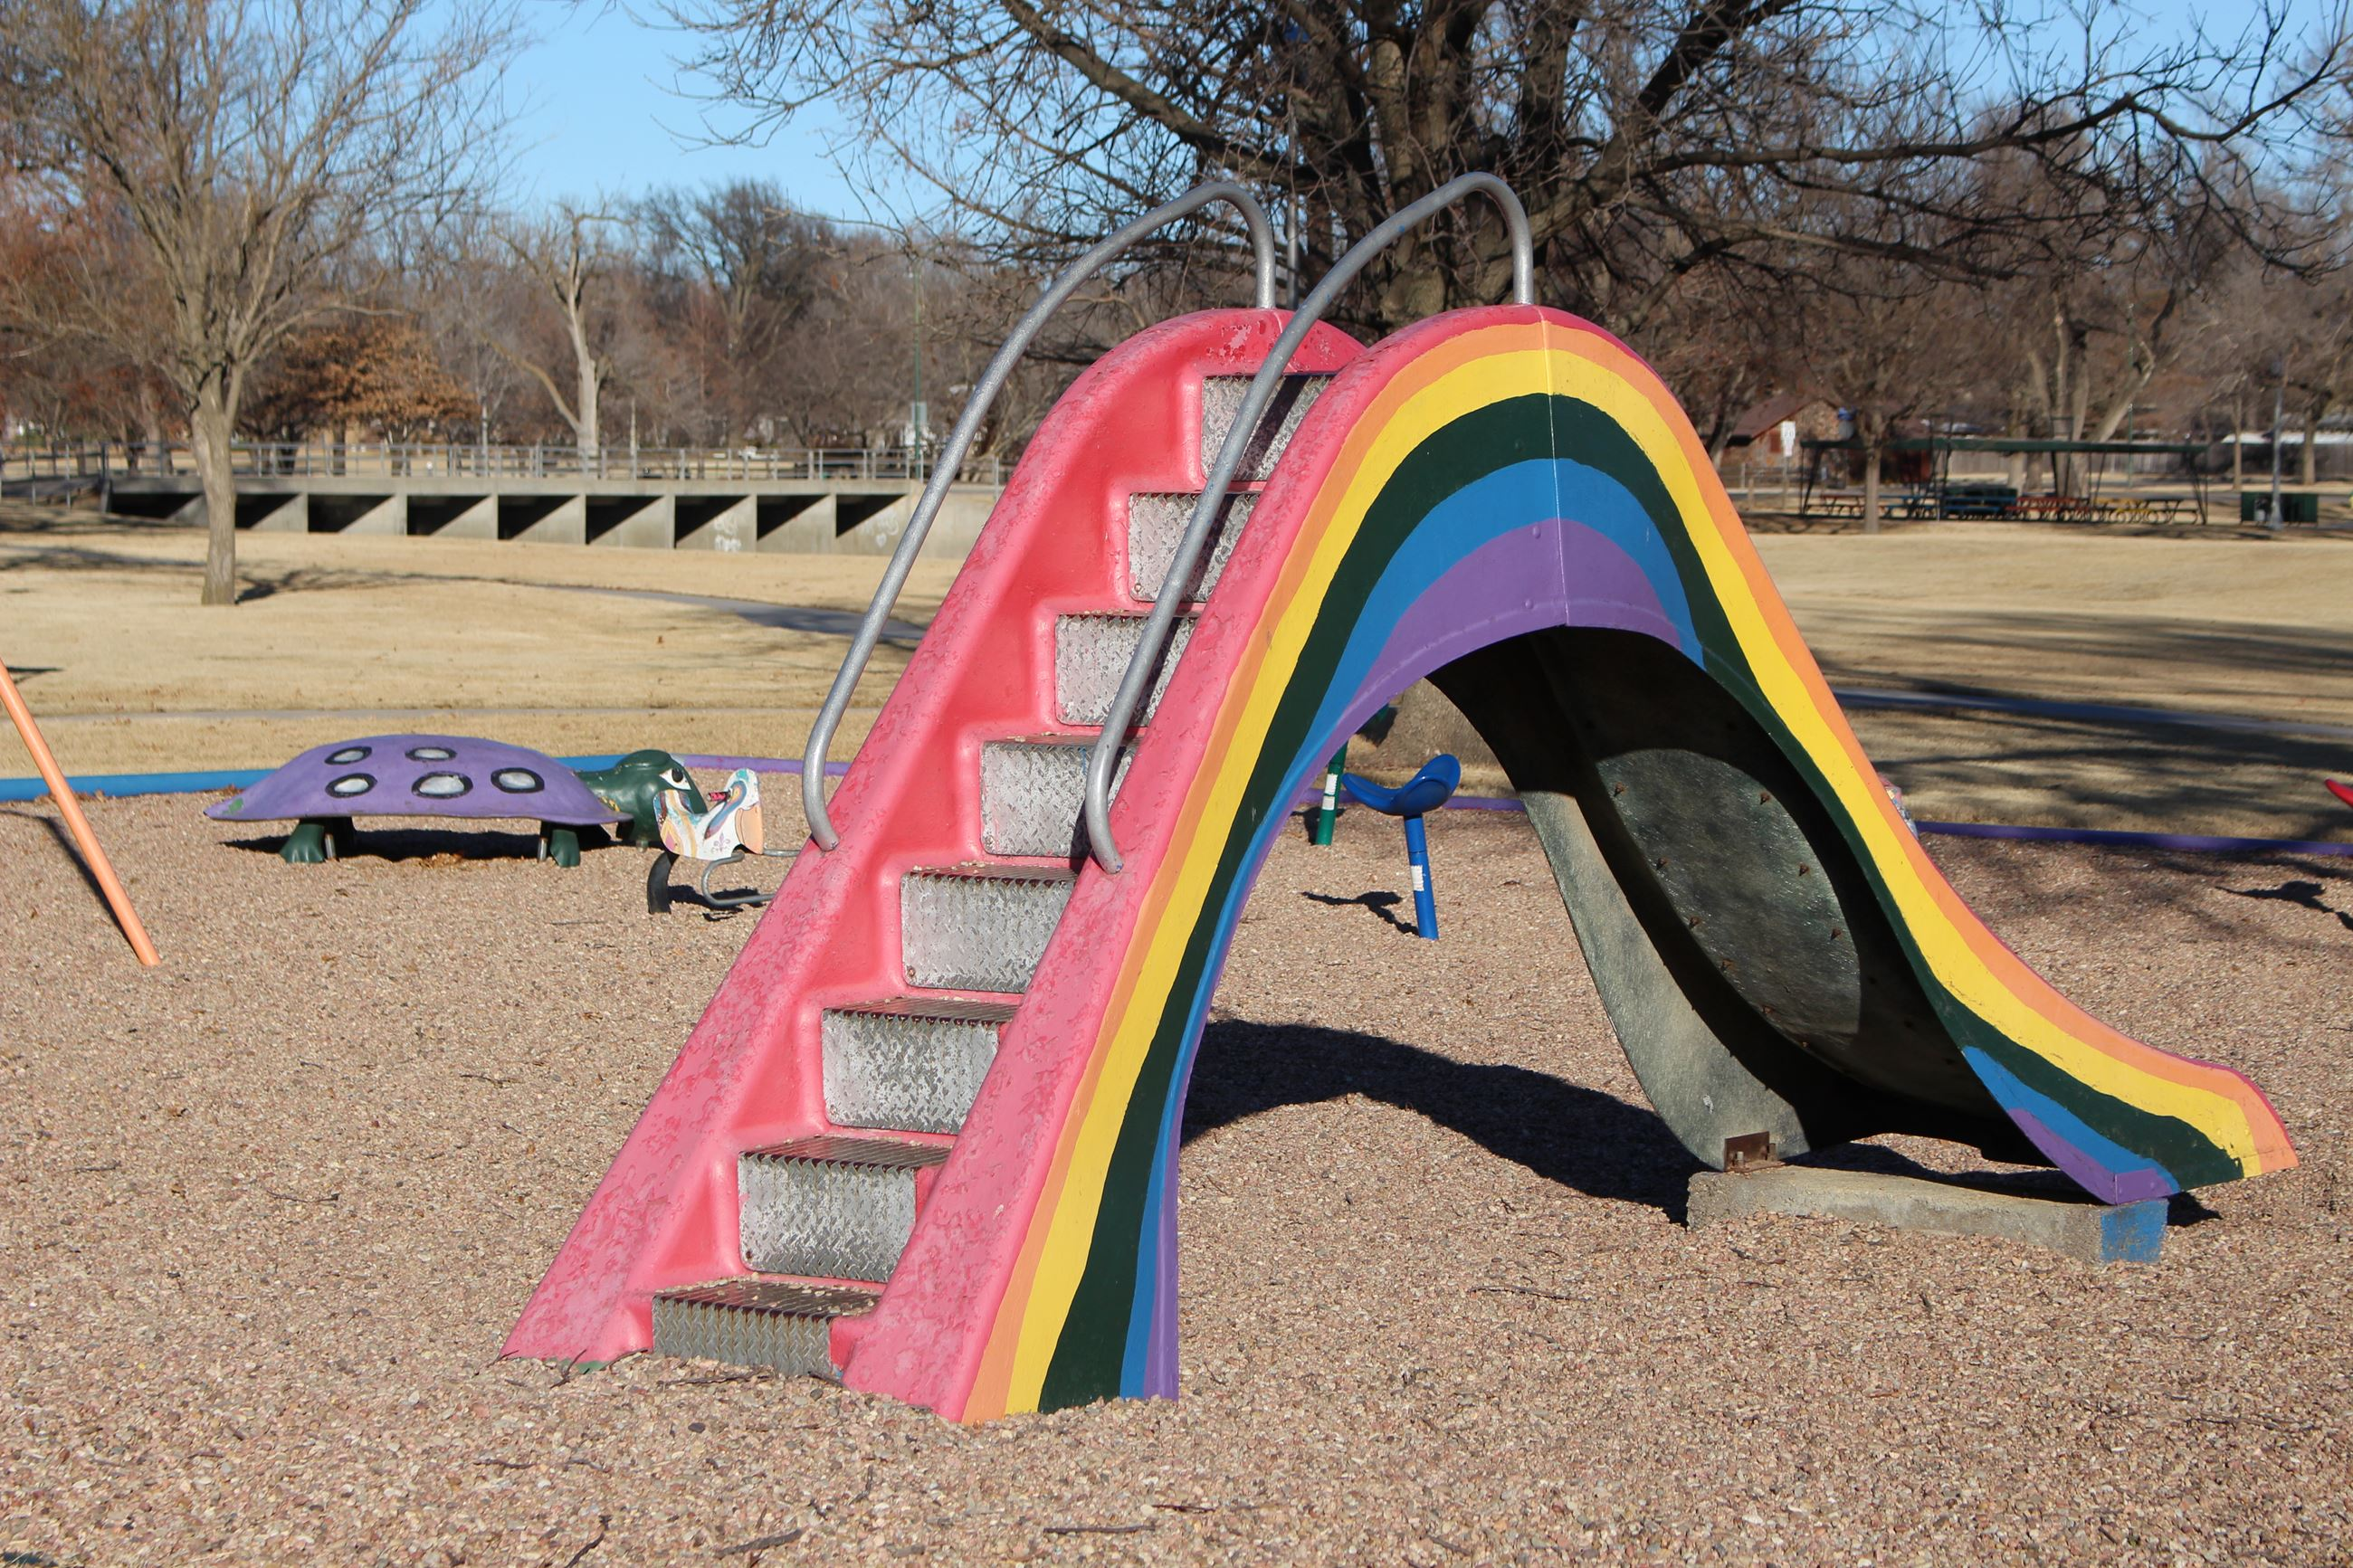 One of the slides at Lakeside park has a slide painted in the colors of a rainbow.